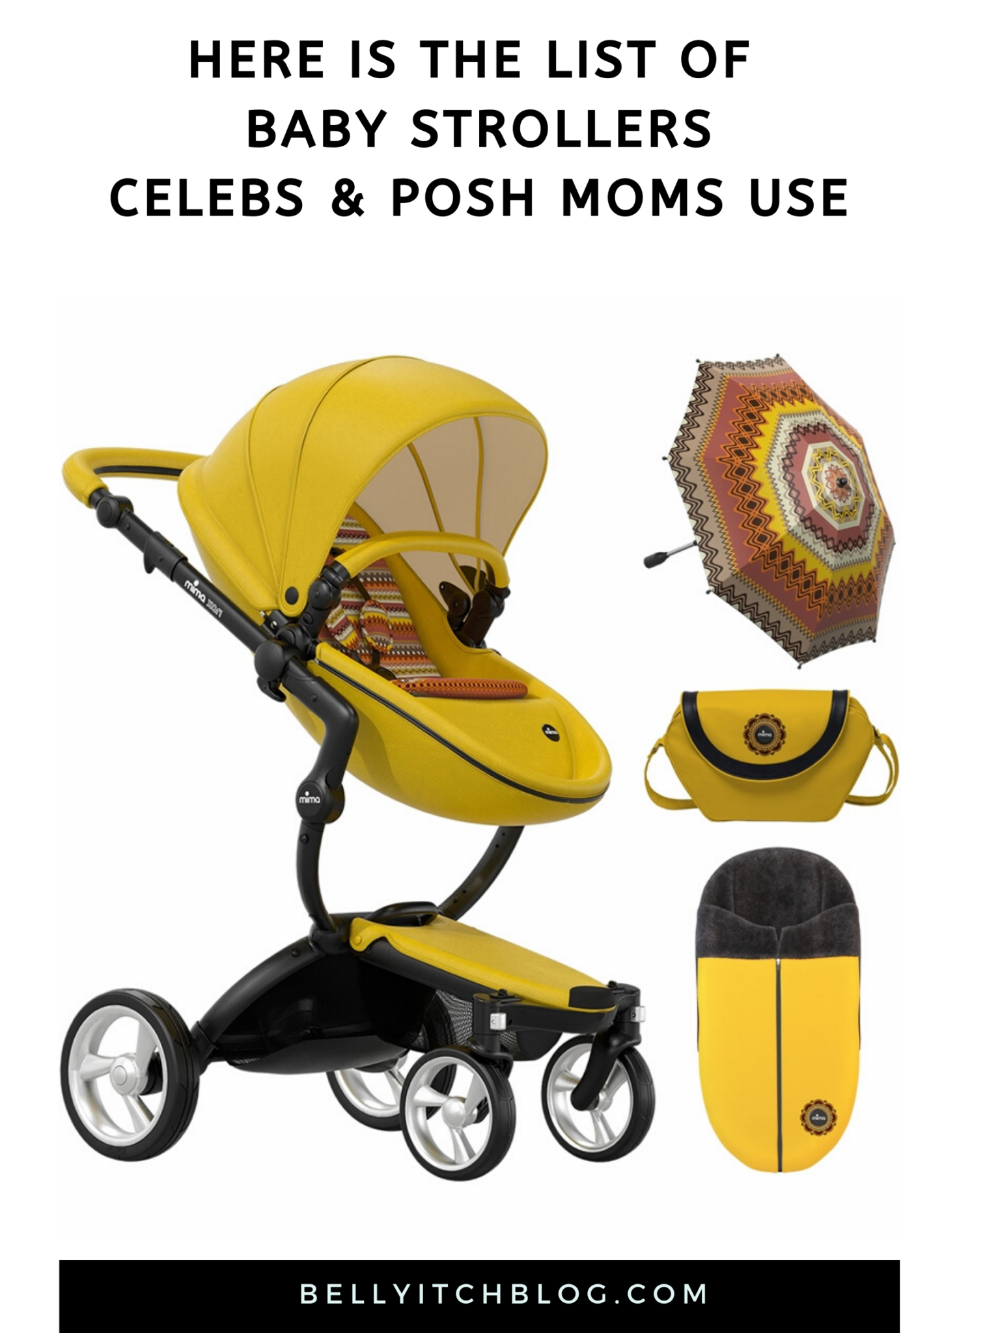 Here are the Strollers Celeb and Posh Moms Use